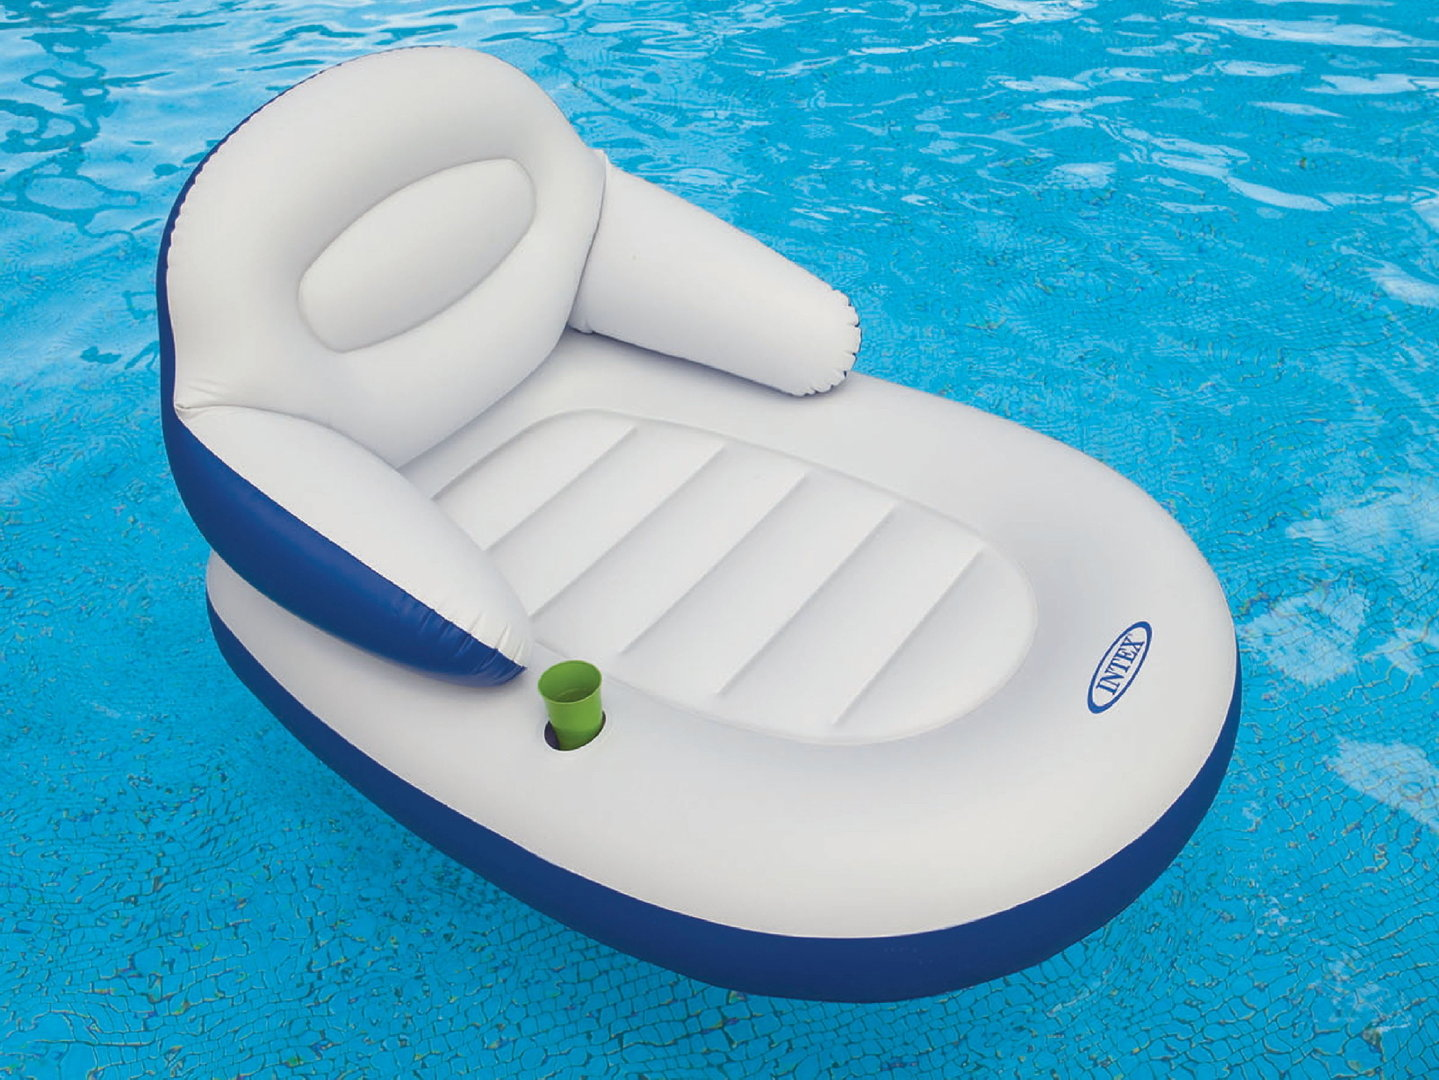 Bestway Pool Abdeckung Oval Schwimmsessel Quotcomfy Cool Lounge Quot Von Intex Bavchem